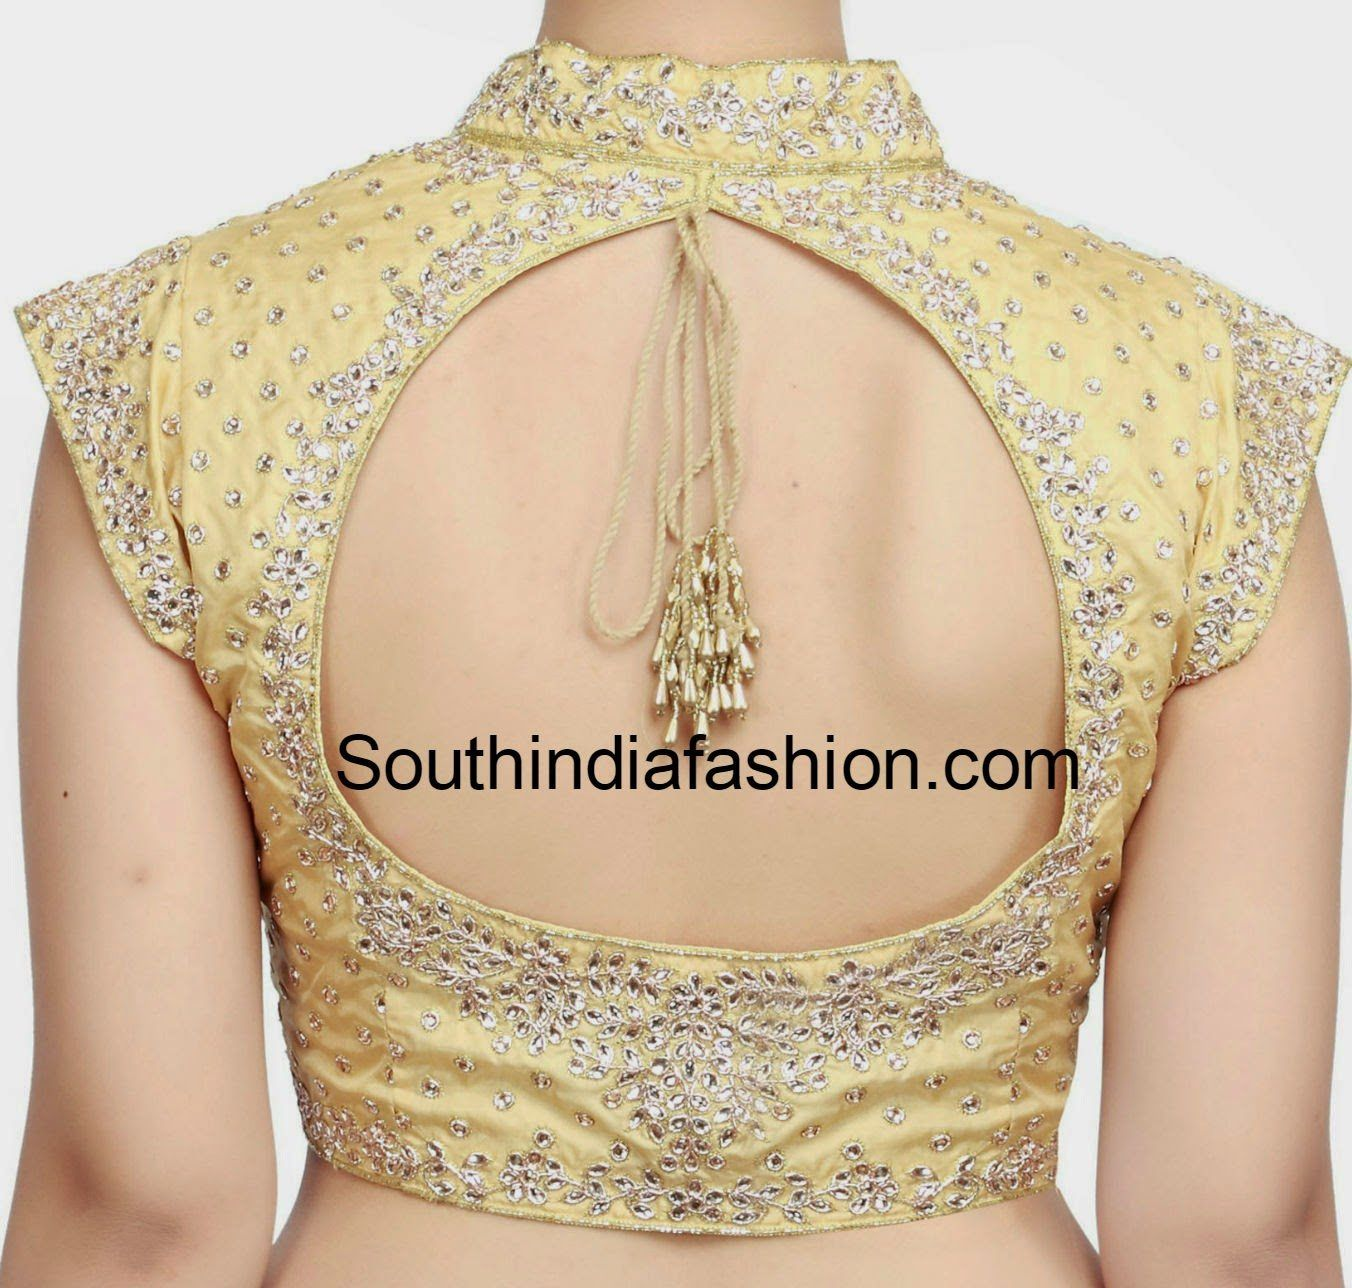 Collar Neck Kundan Work Blouse is part of Specific Styles Of Collar Neck Blouse Patterns Catalogue - Collar Neck Kundan Work Blouse   Gold stand collar neck kundan work blouse with front opening and cut out on the